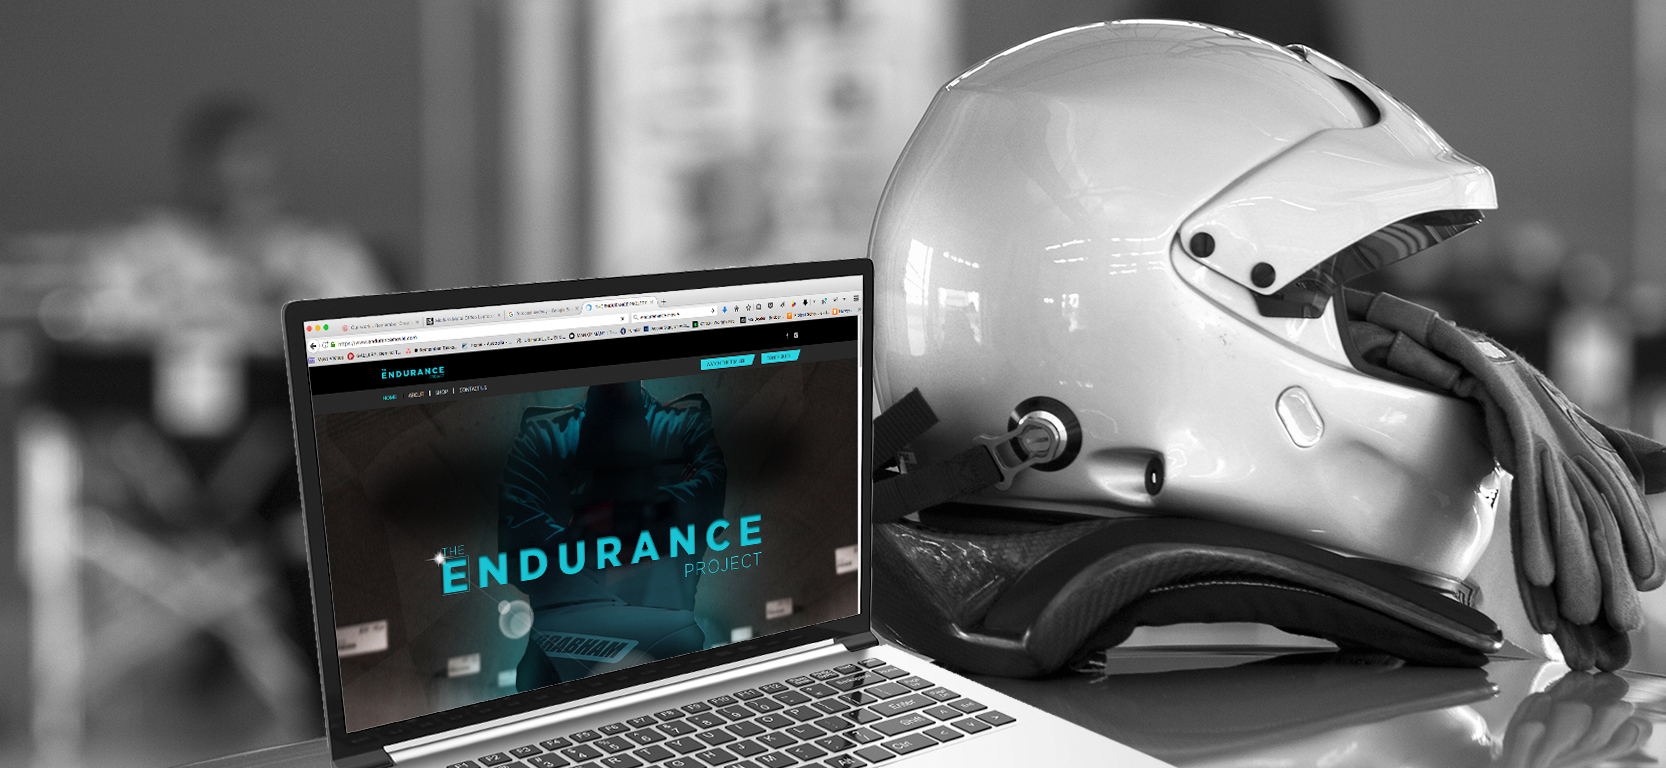 the-endurance-projecy